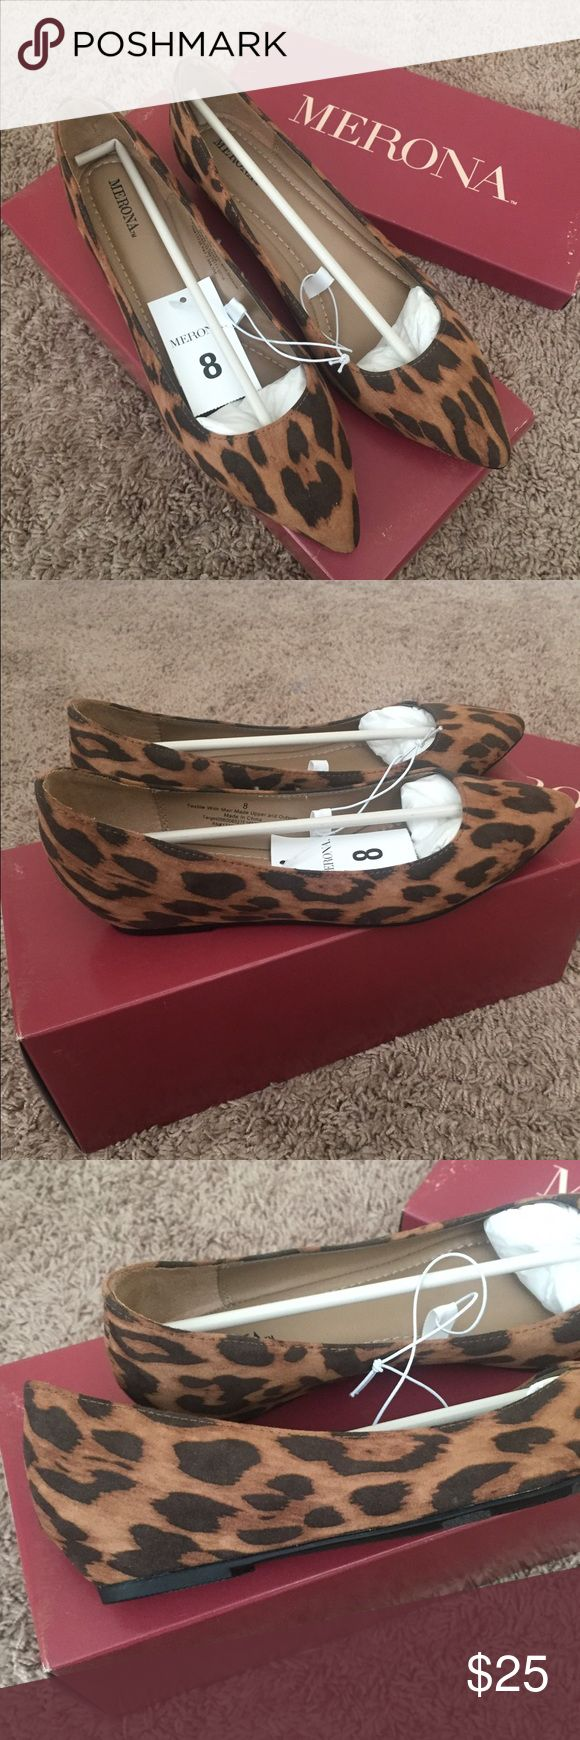 Leopard Print Wedges These are Merona leopard print wedges. They're size 8, brand new with tag. Merona Shoes Wedges